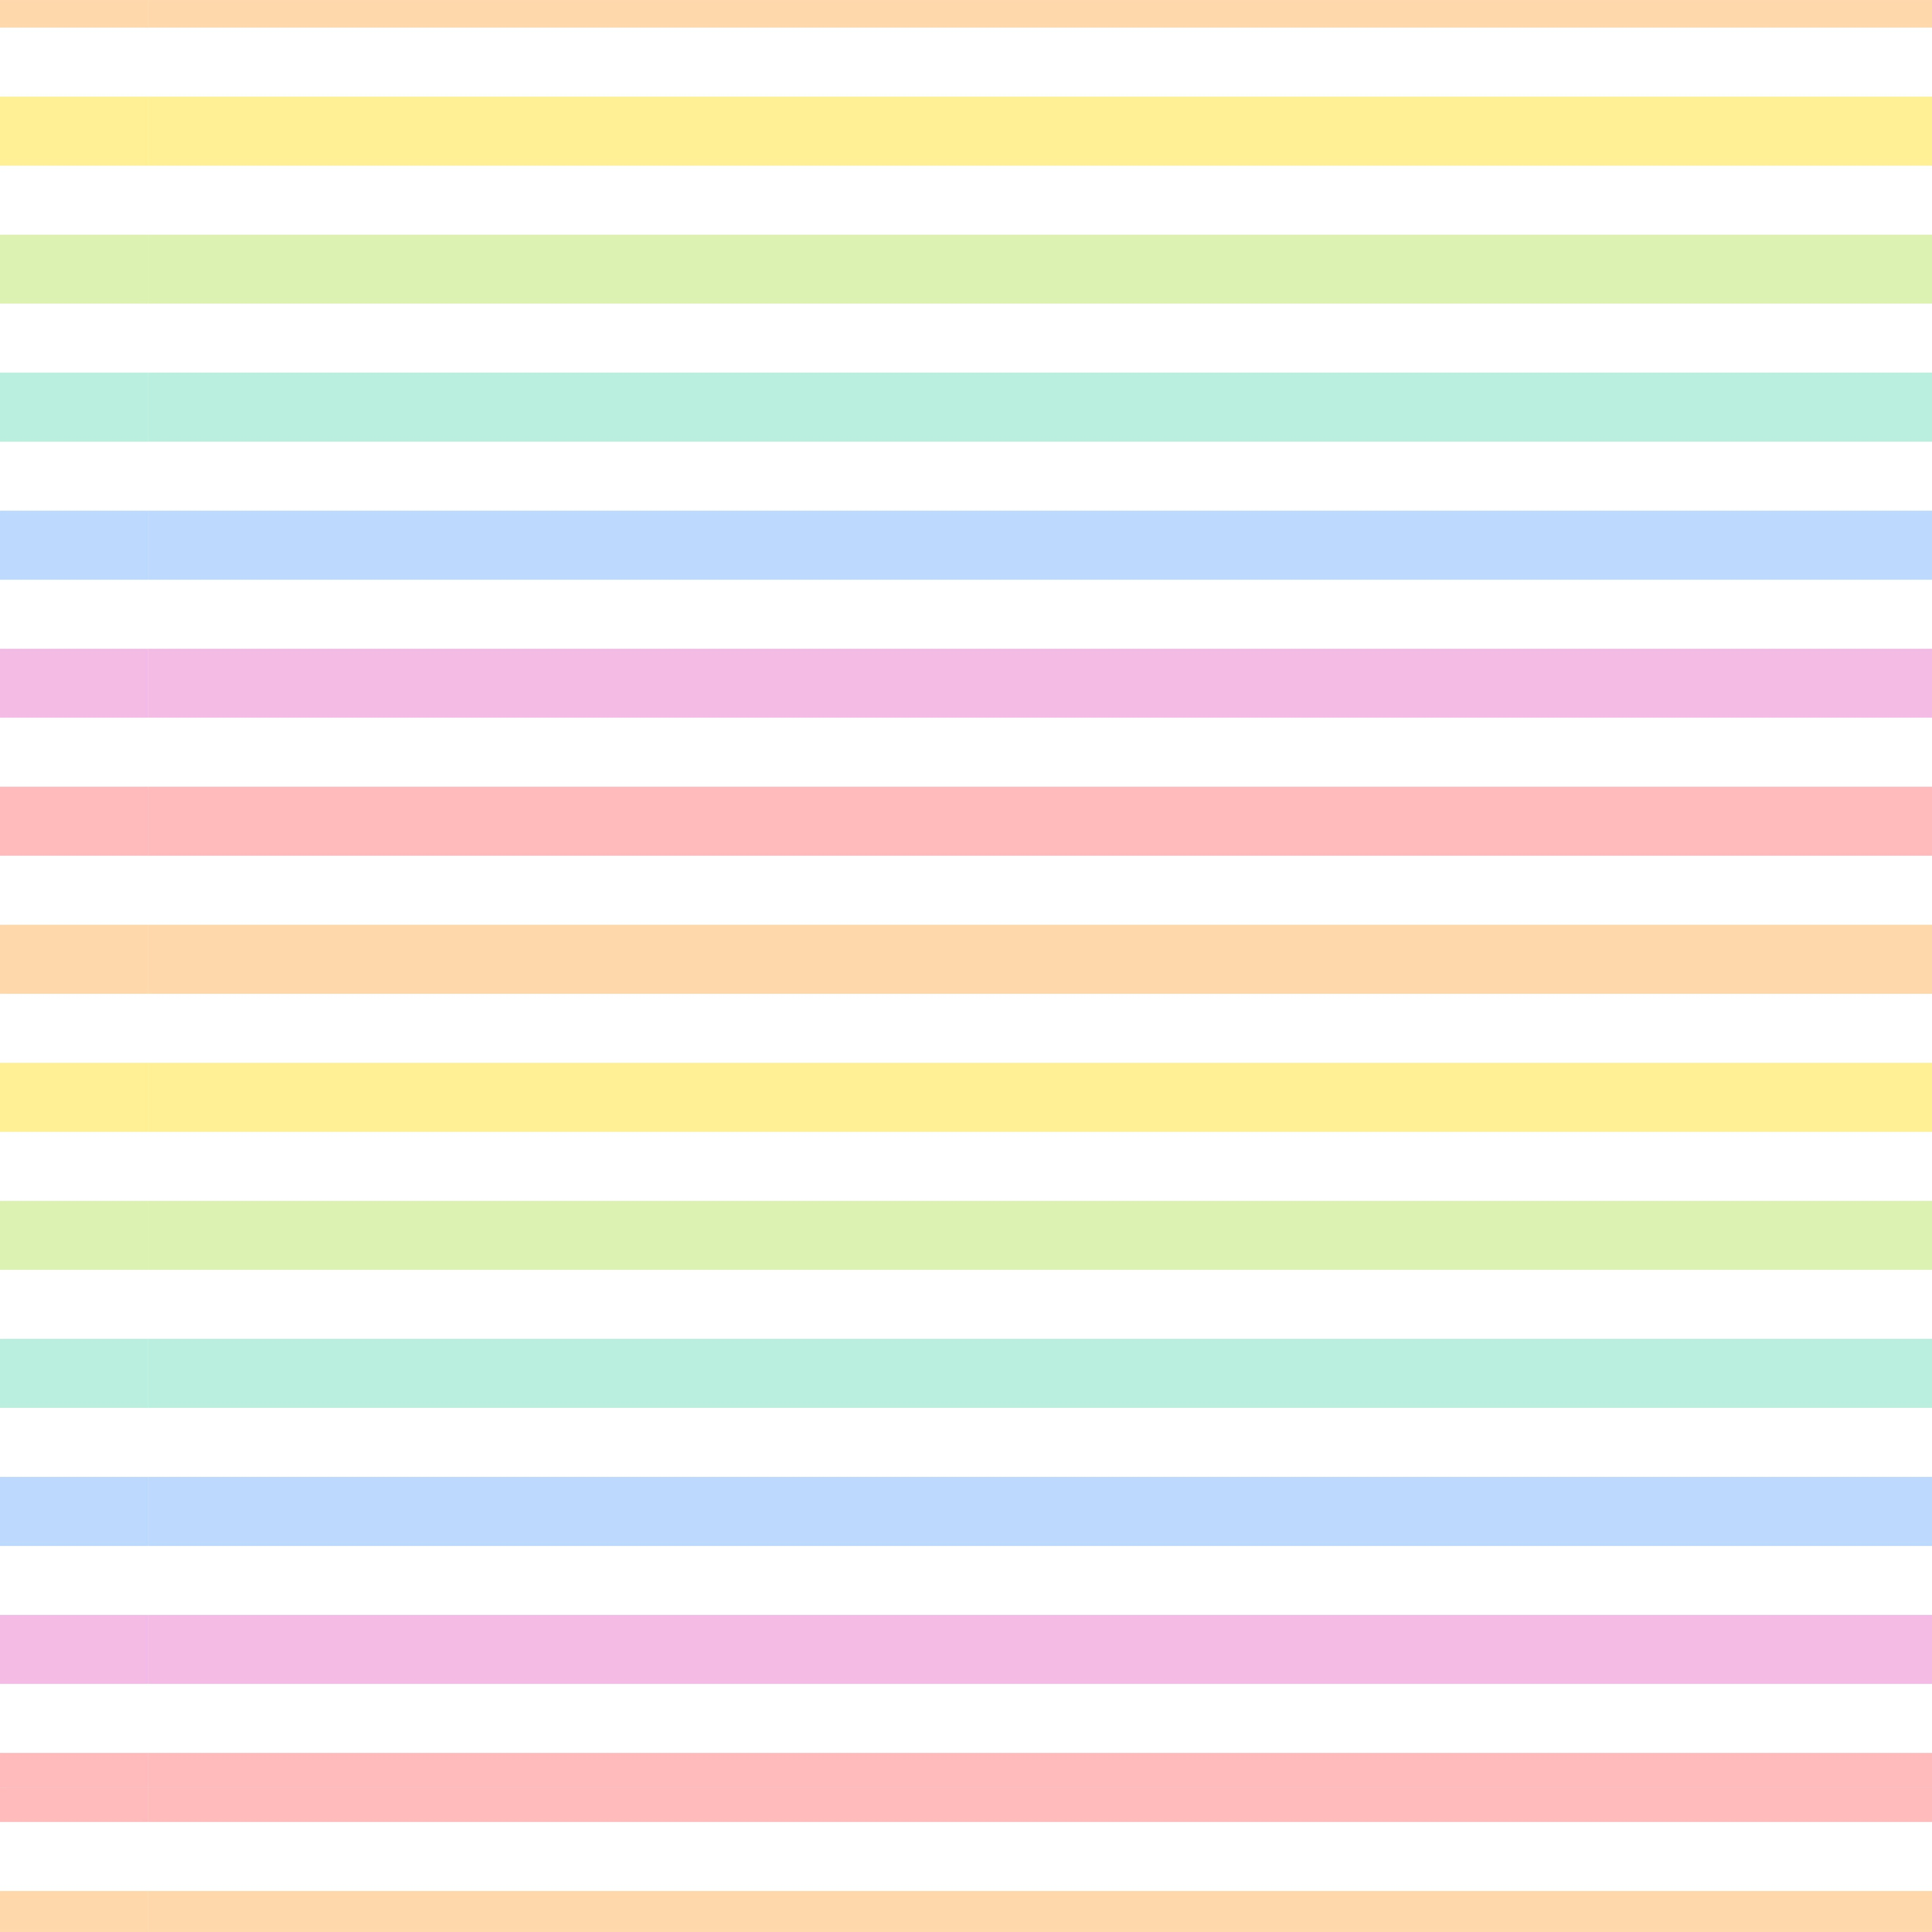 Cute Girly Patterns Wallpaper Seamless Colorful Horizontal Lines Pattern Vector